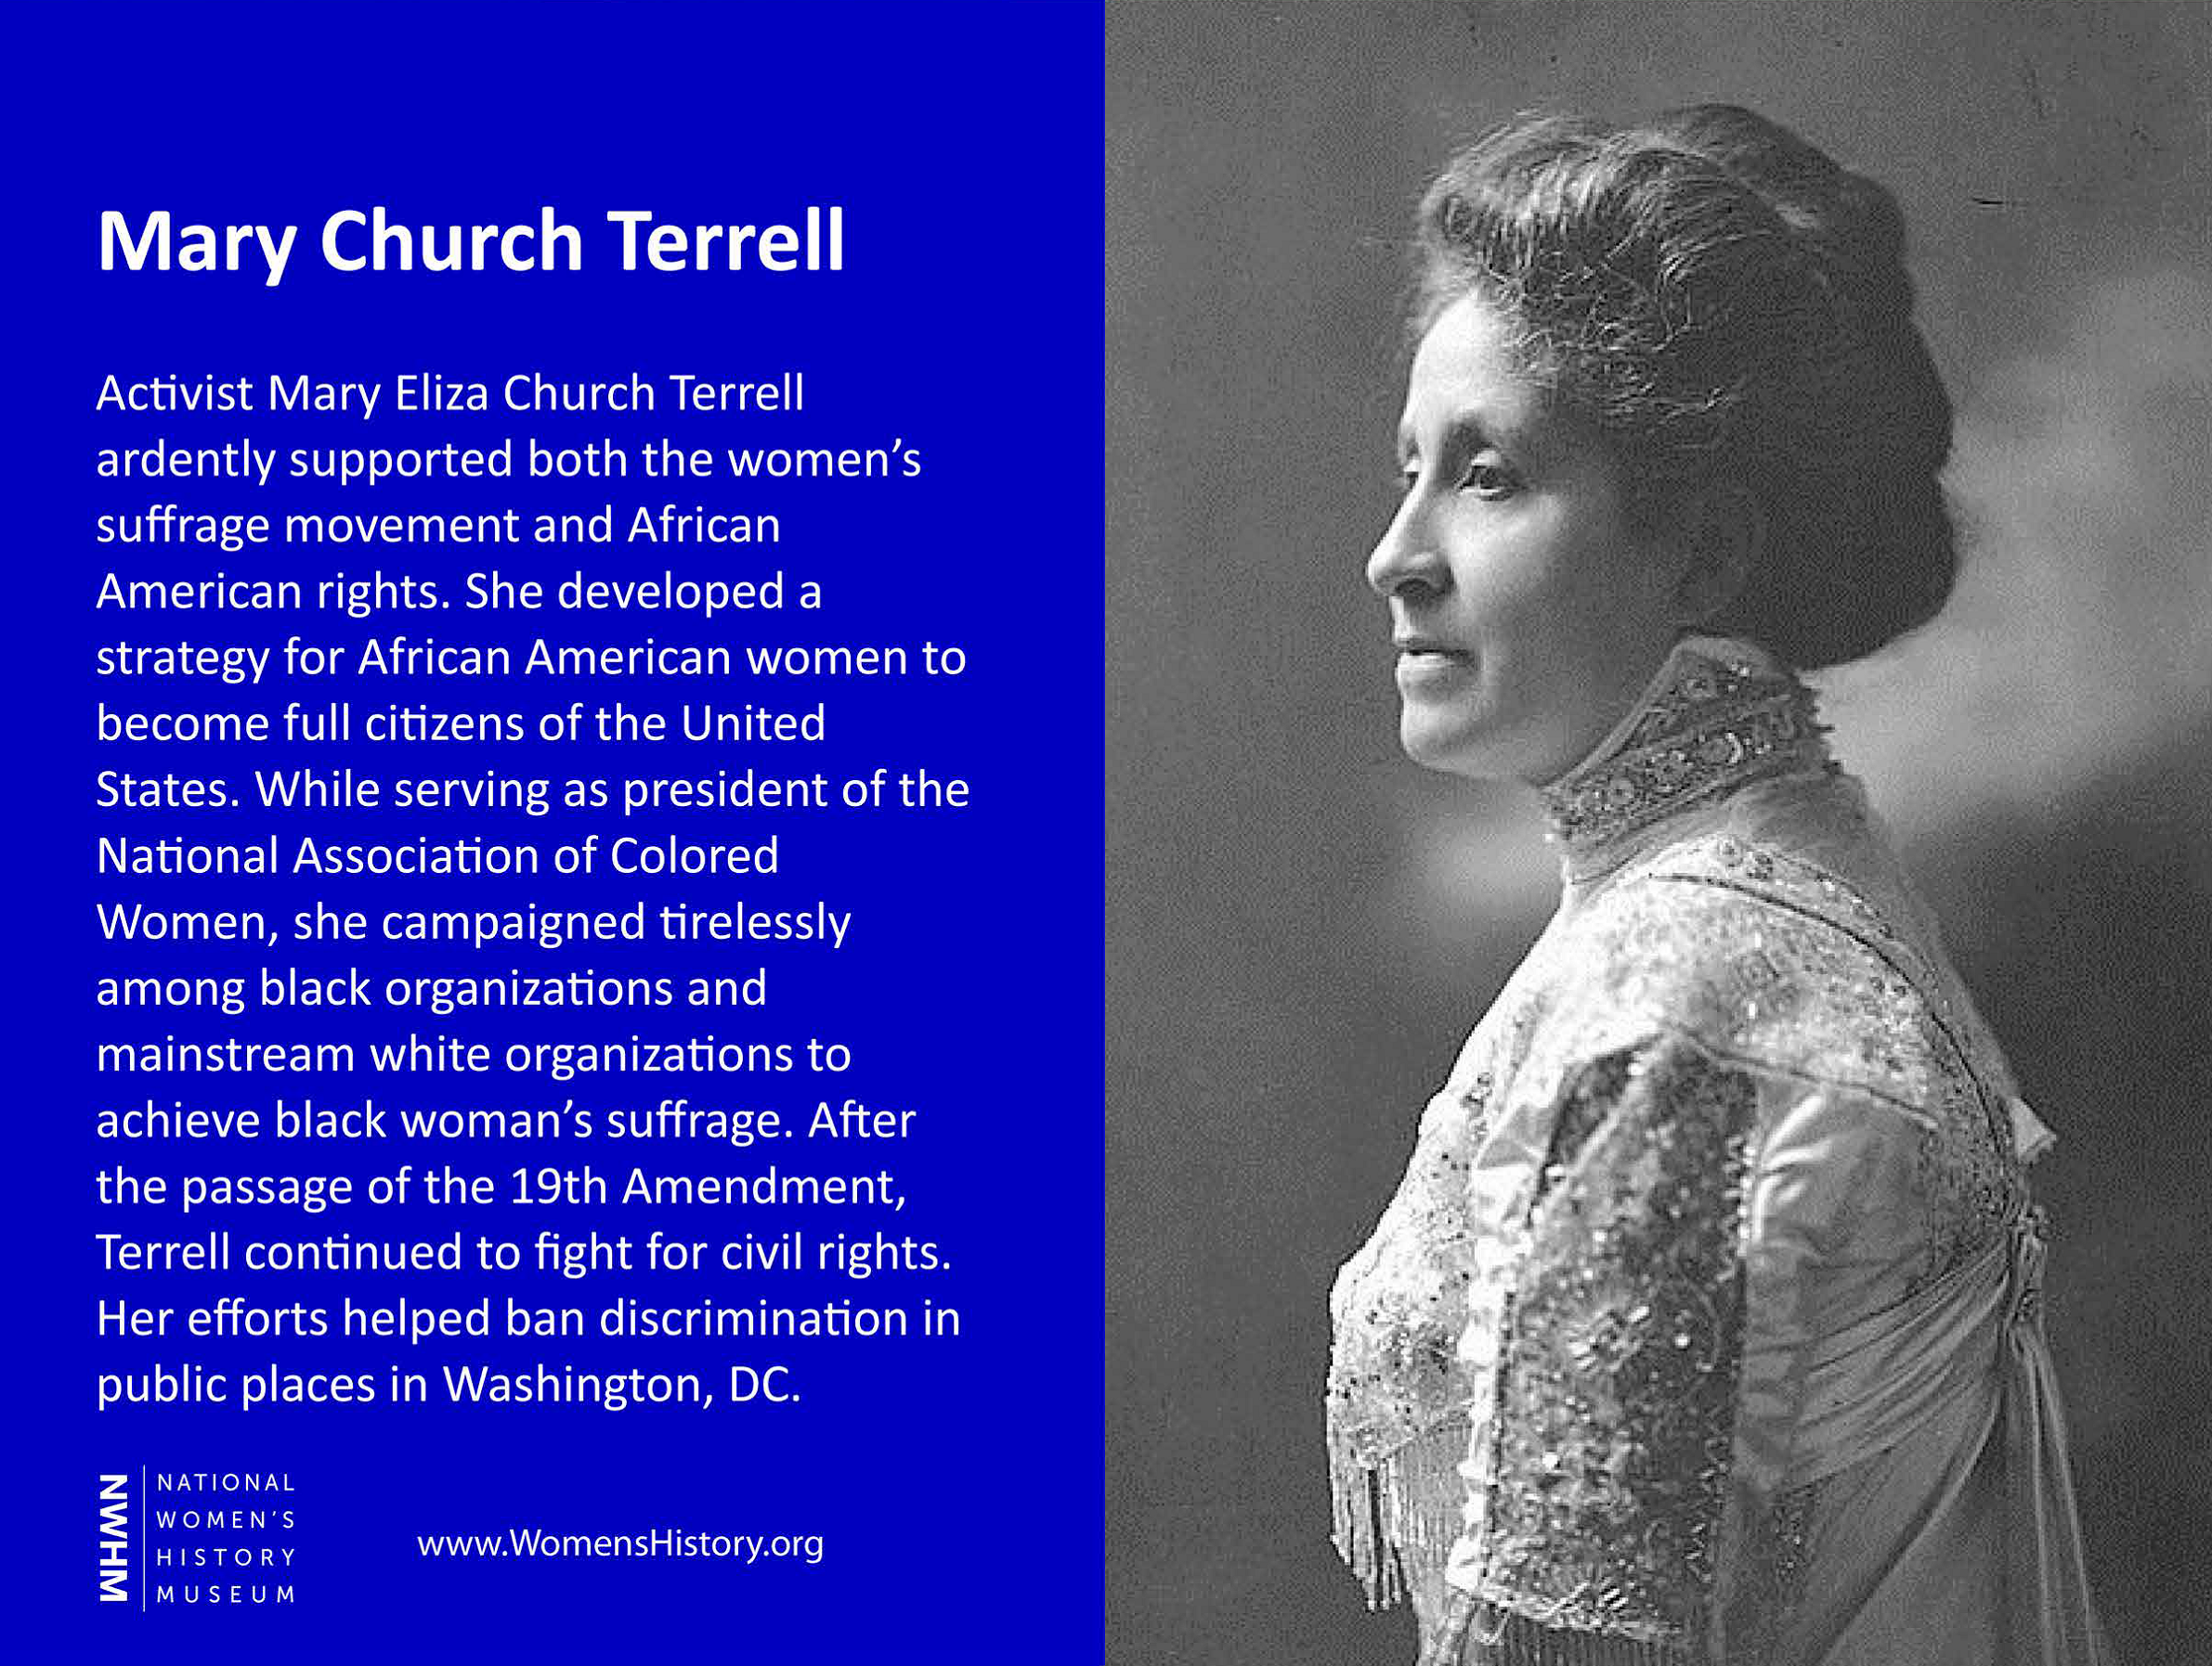 Activist Mary Eliza Church Terrell ardently supported both the women's suffrage movement and African American rights. She developed a strategy for African American women to become full citizens of the United States. While serving as president of the National Association of Colored Women, she campaigned tirelessly among black organizations and mainstream white organizations to achieve black woman's suffrage. After the passage of the 19th Amendment, Terrell continued to fight for civil rights. Her efforts helped ban discrimination in public places in Washington, DC.